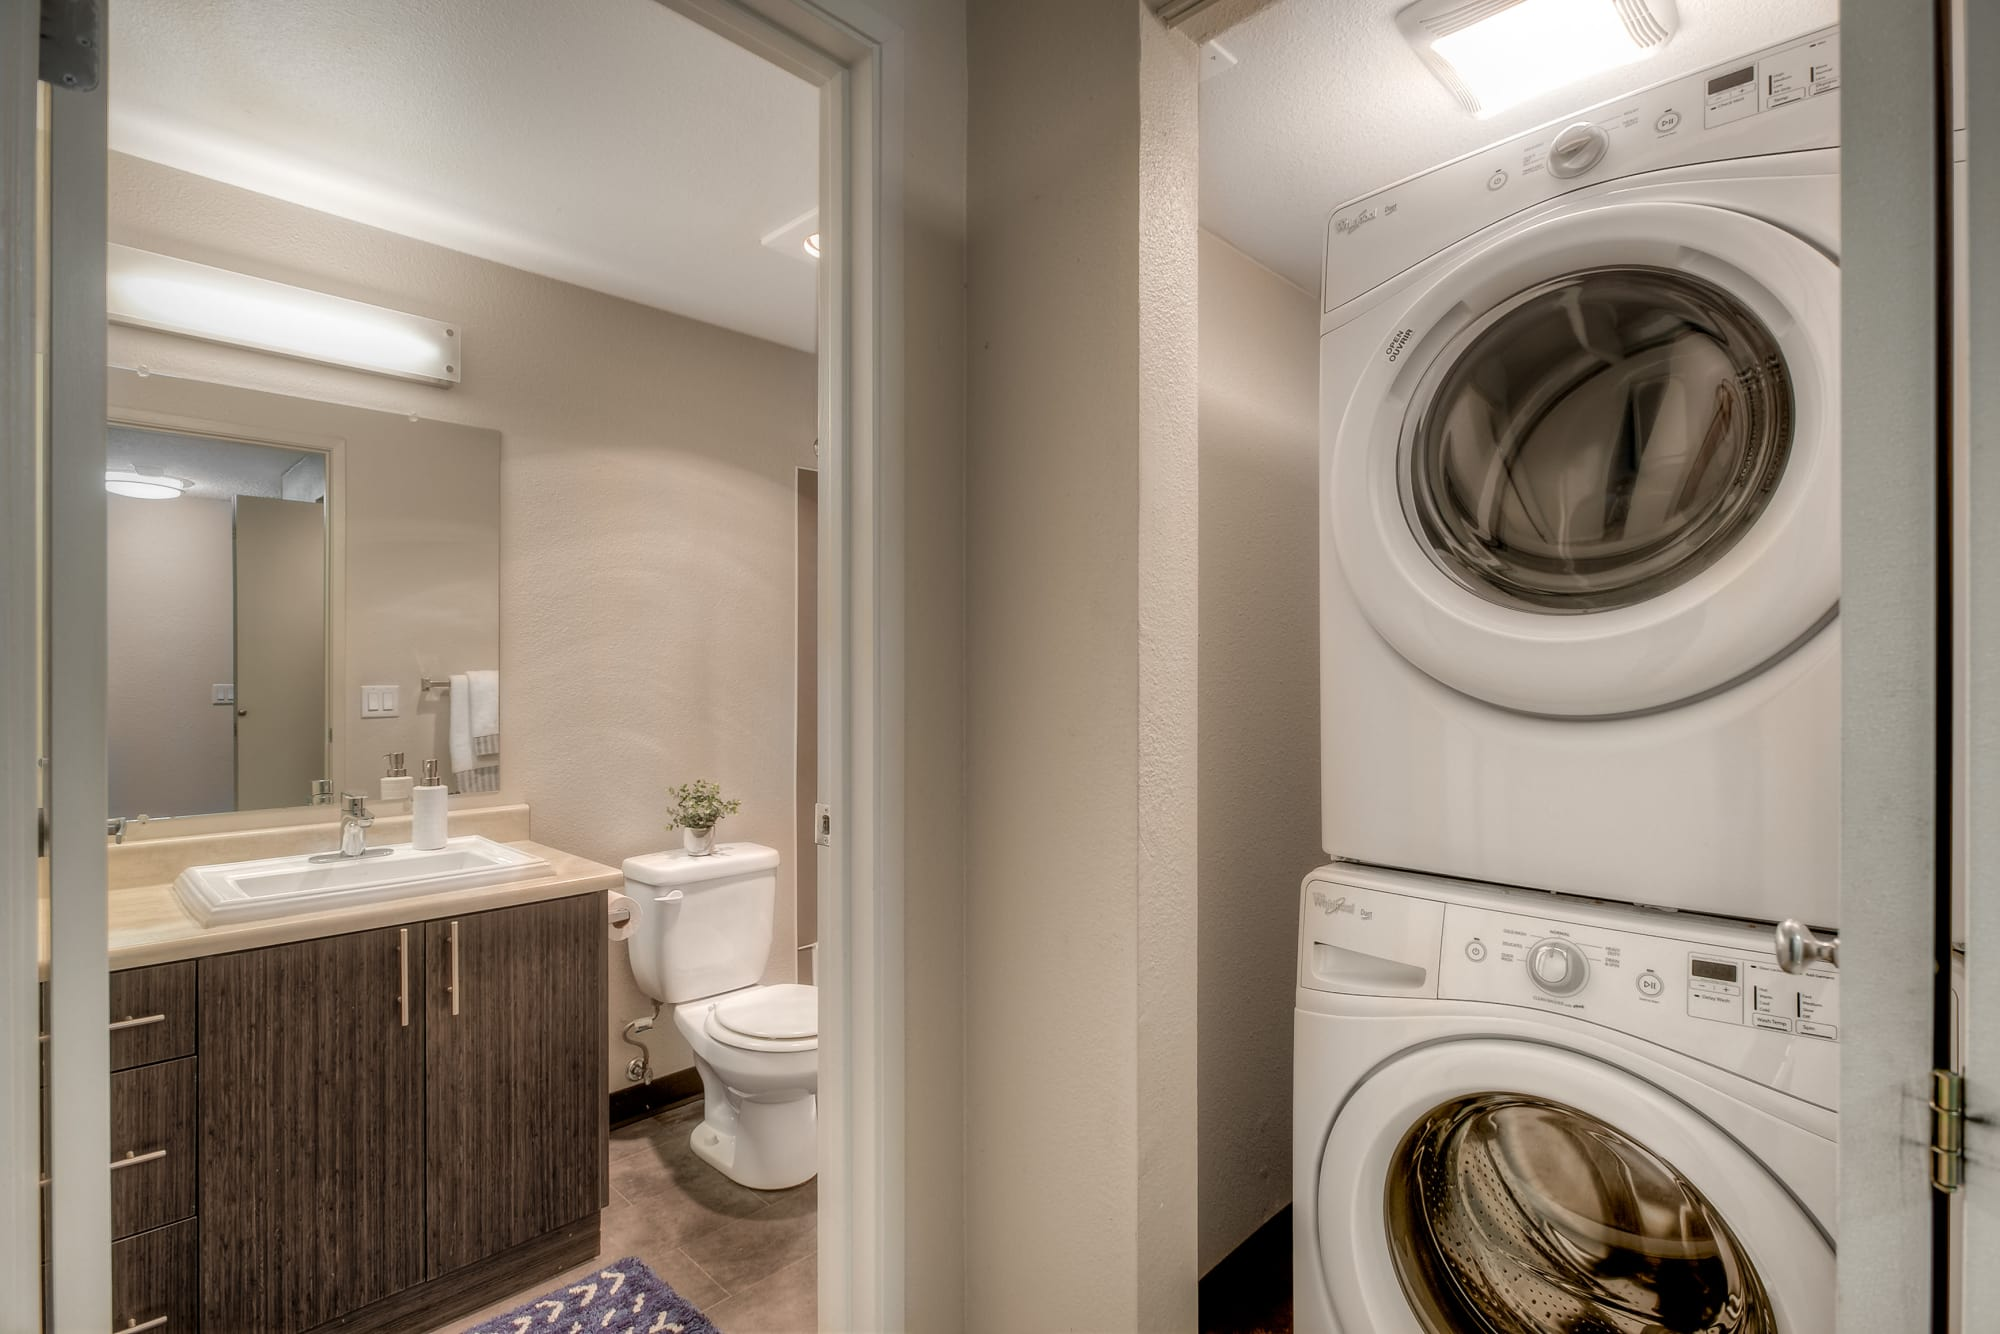 Bathroom and stacked washer and dryer at Karbon Apartments in Newcastle, Washington